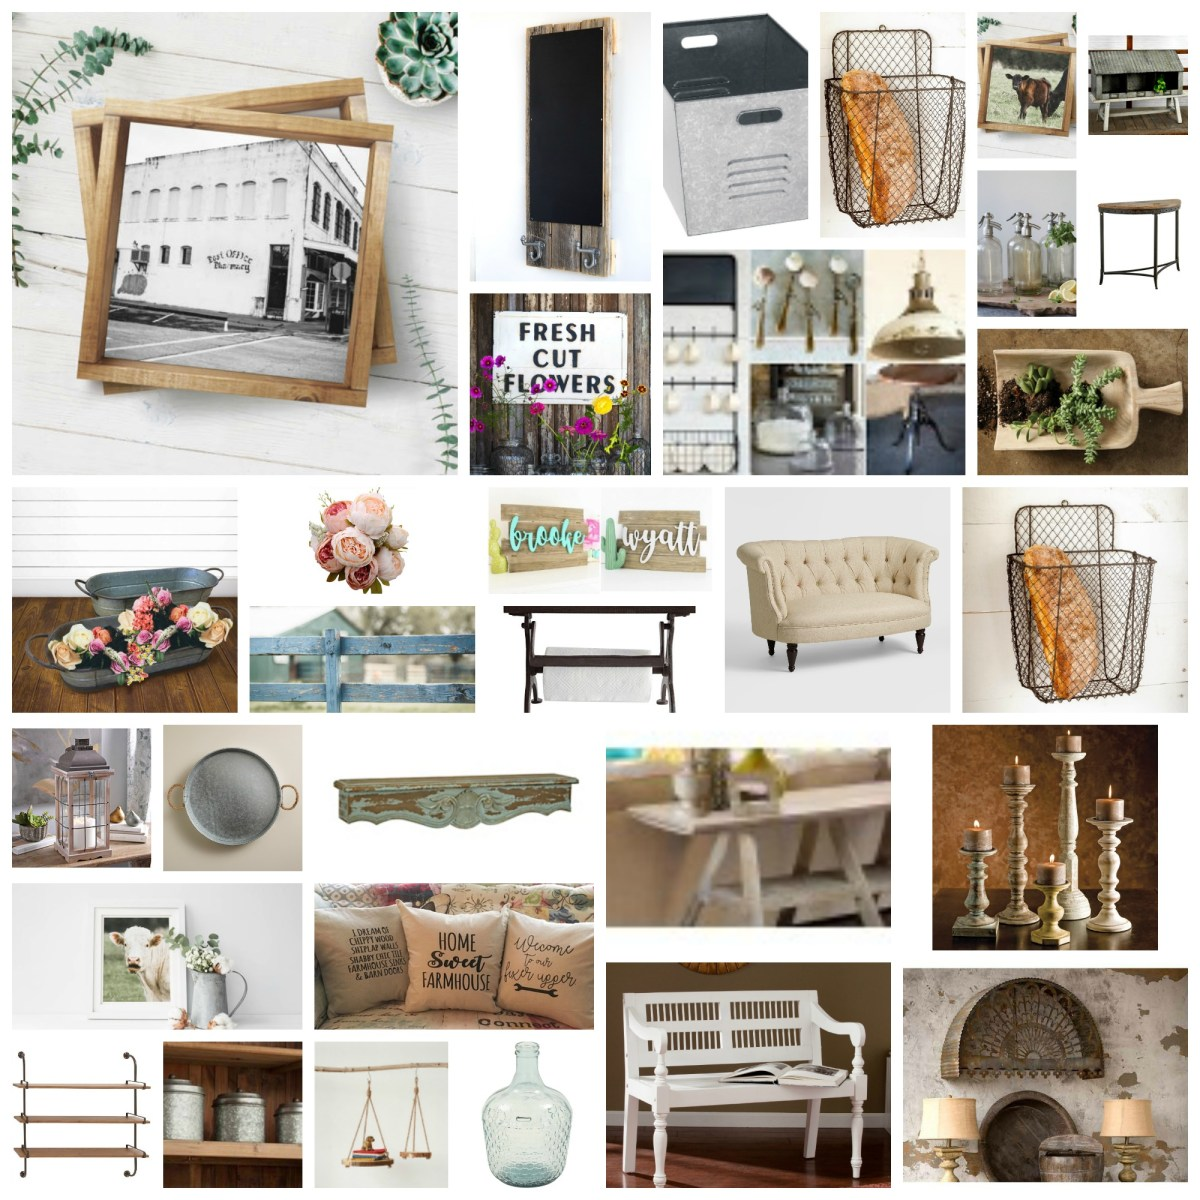 Home Decor Daily Deals: Wednesday, March 22, 2017